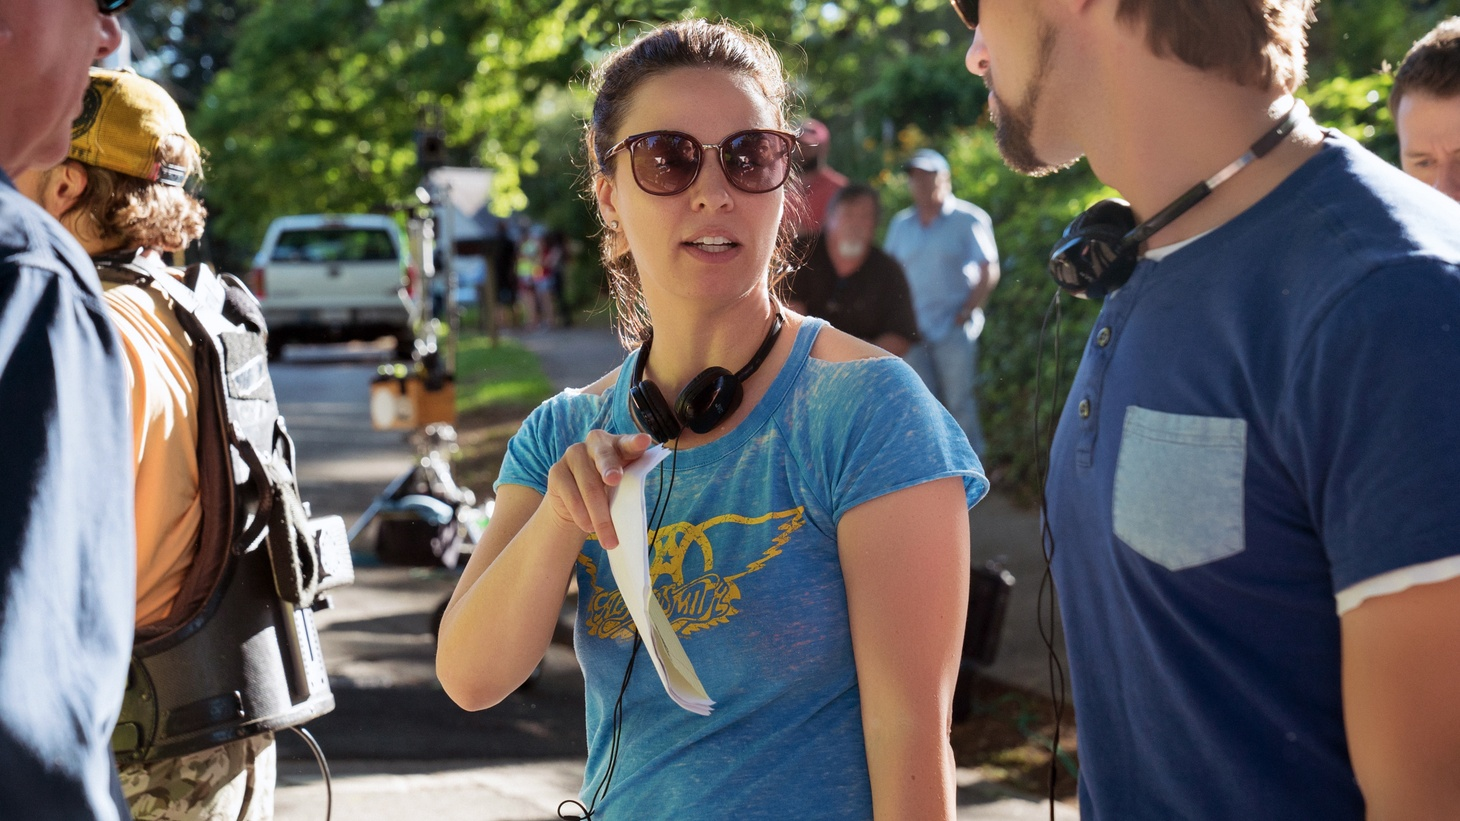 'Blockers 'is comedy writer Kay Cannon's directorial debut. When she was hired for the project, she had some work to do on a script about girls, written by a bunch of guys. Cannon tells us how she made 'Blockers' funnier and more feminist.